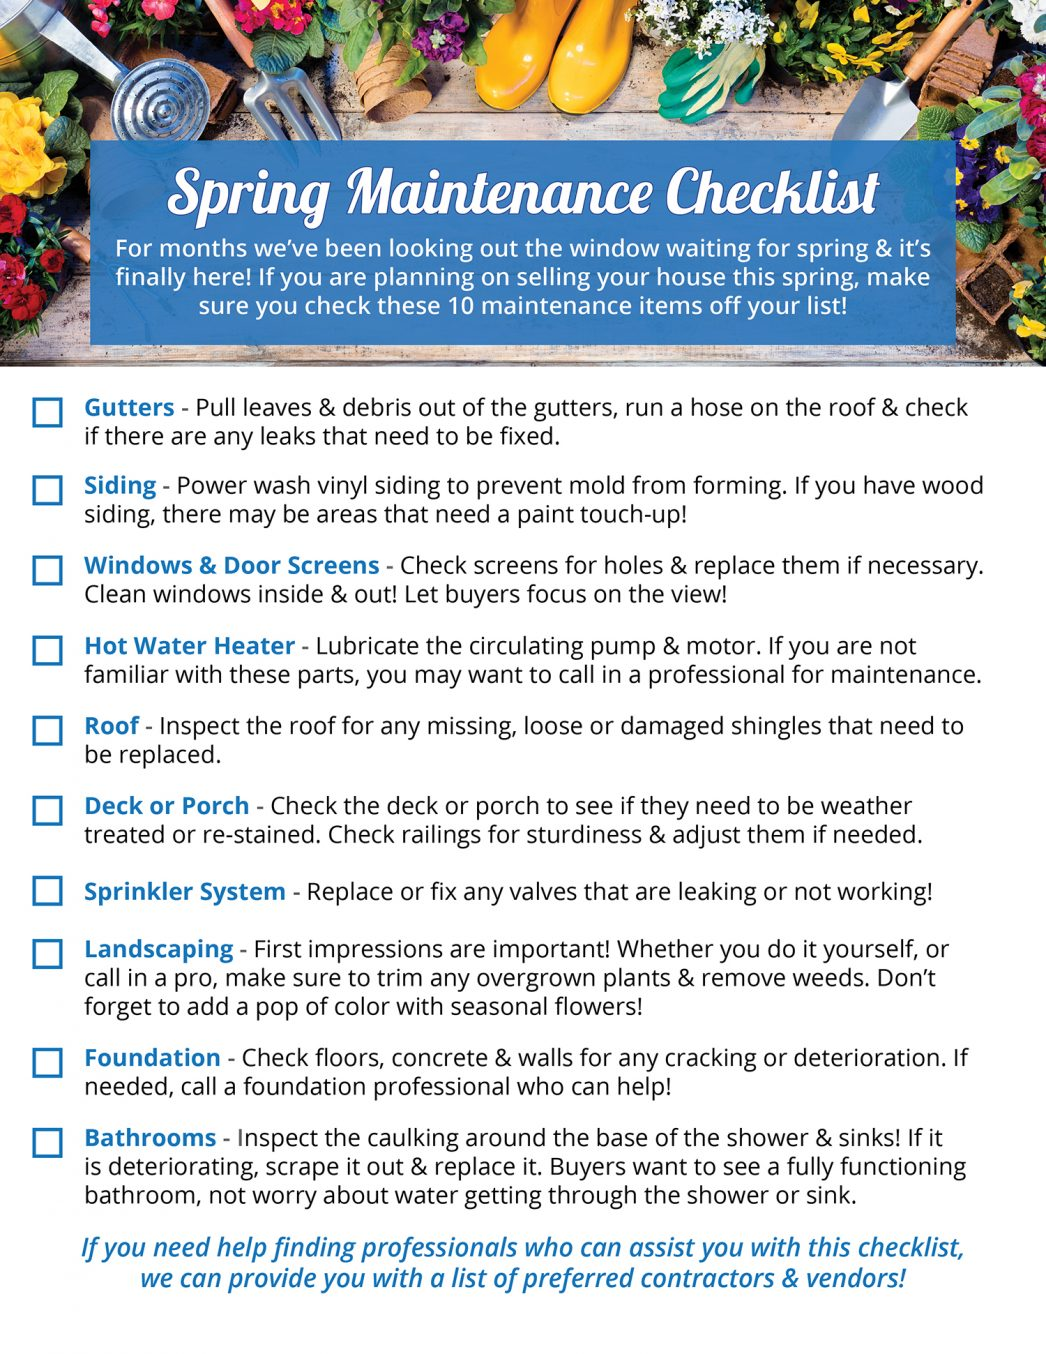 Your Home's Spring Maintenance Checklist [INFOGRAPHIC] | MyKCM